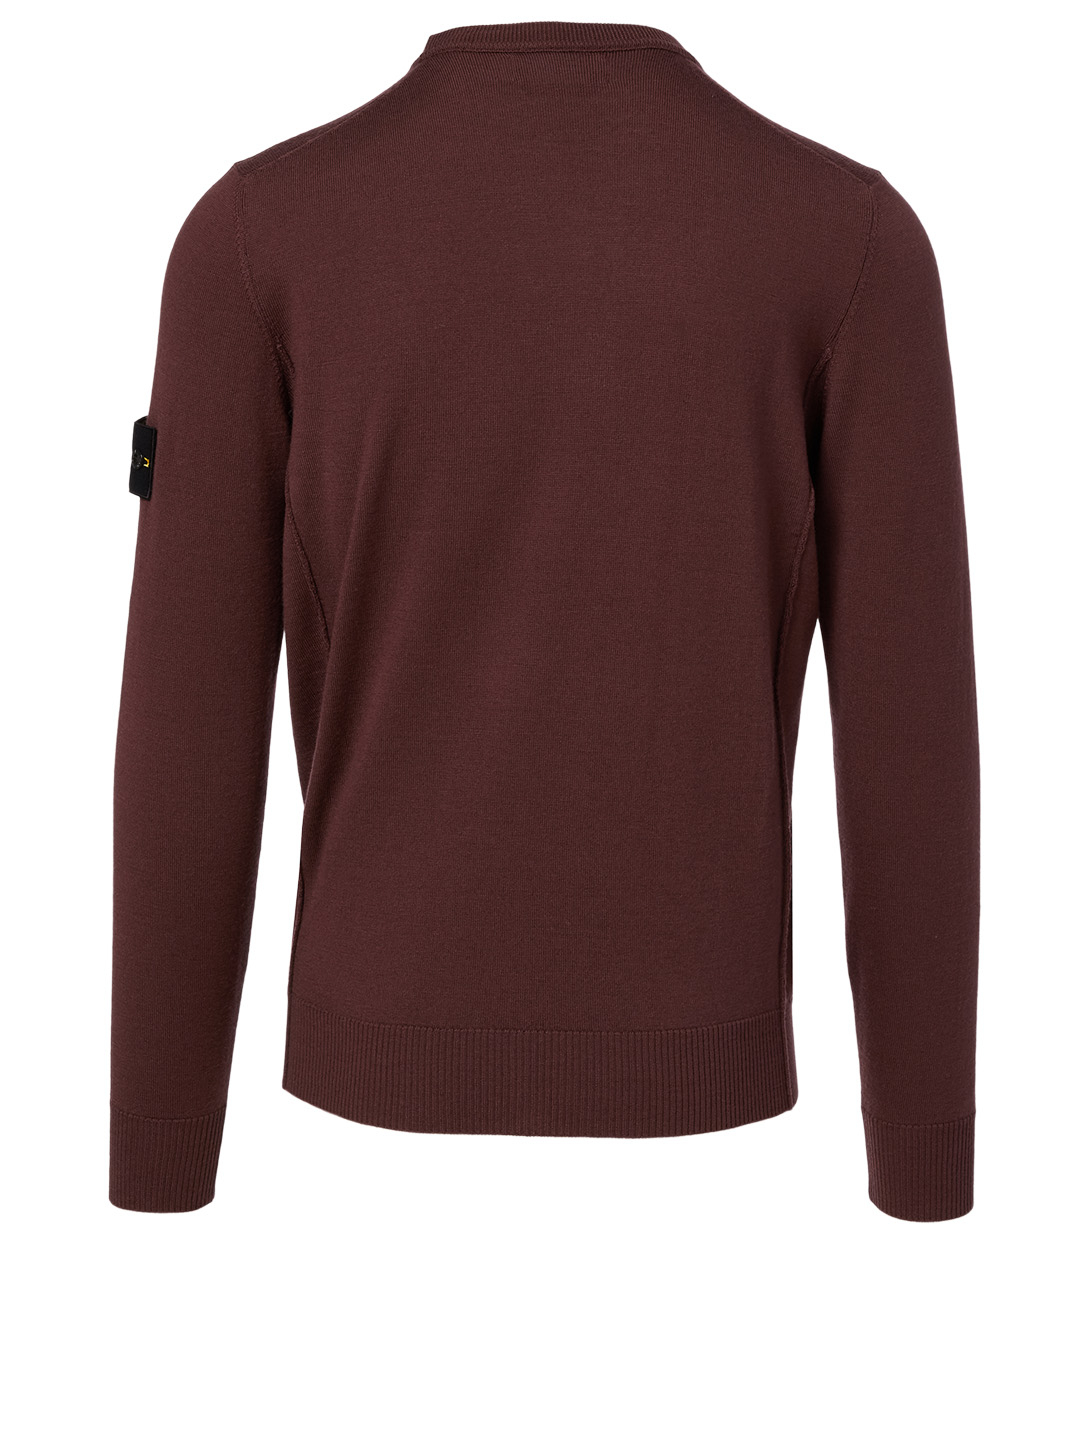 STONE ISLAND Wool Sweater Men's Red